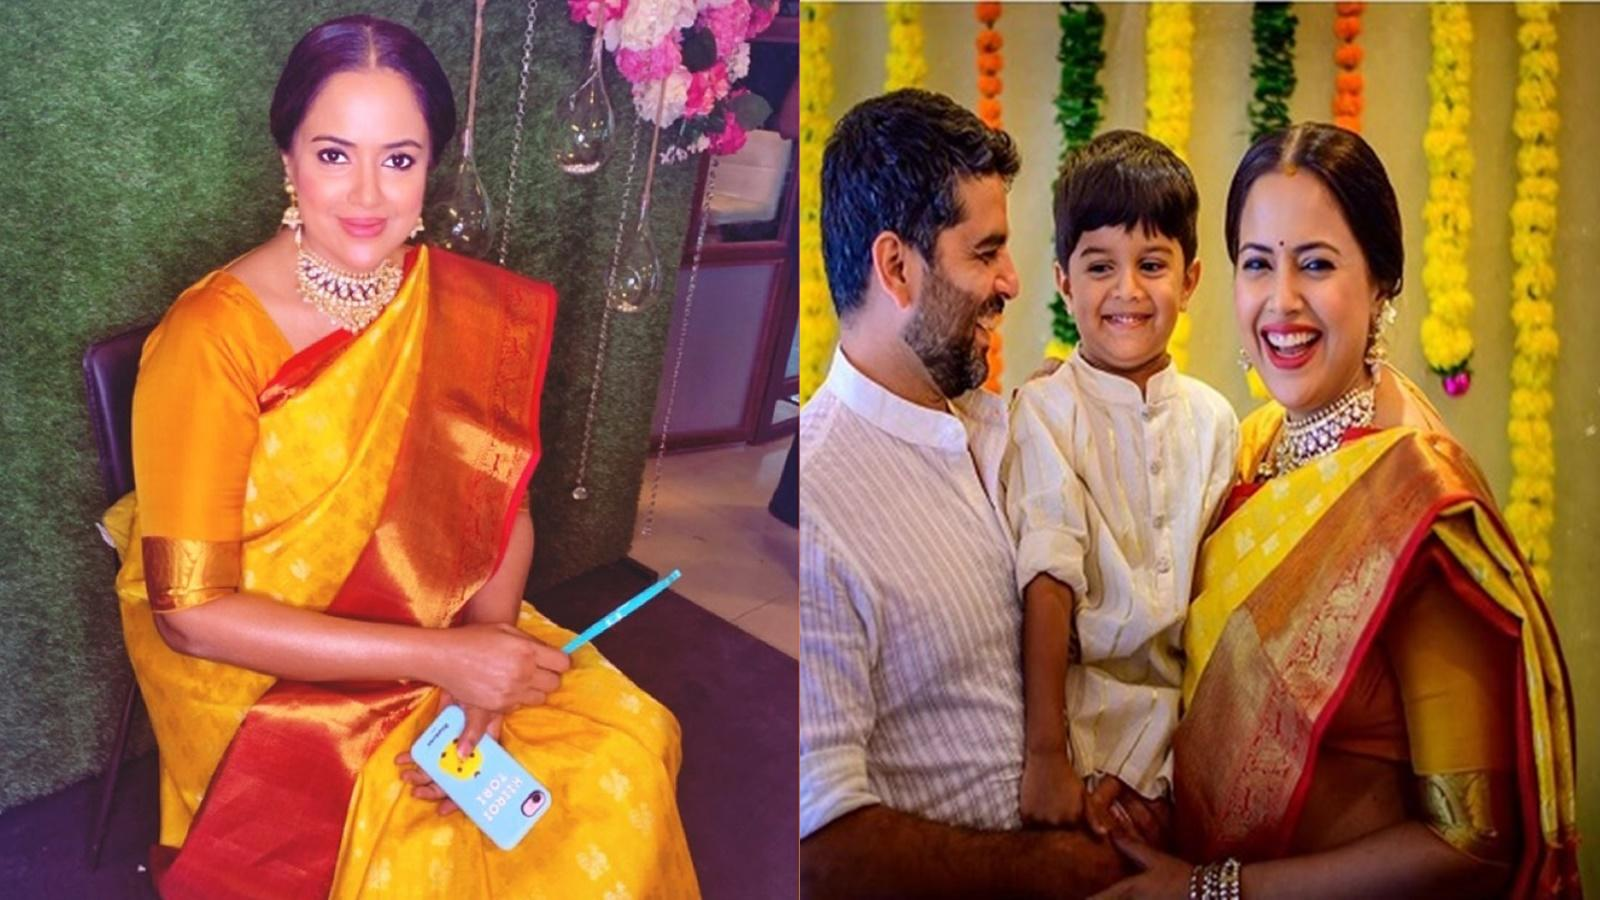 sameera-reddy-celebrates-her-baby-shower-looks-gorgeous-in-traditional-yellow-sari